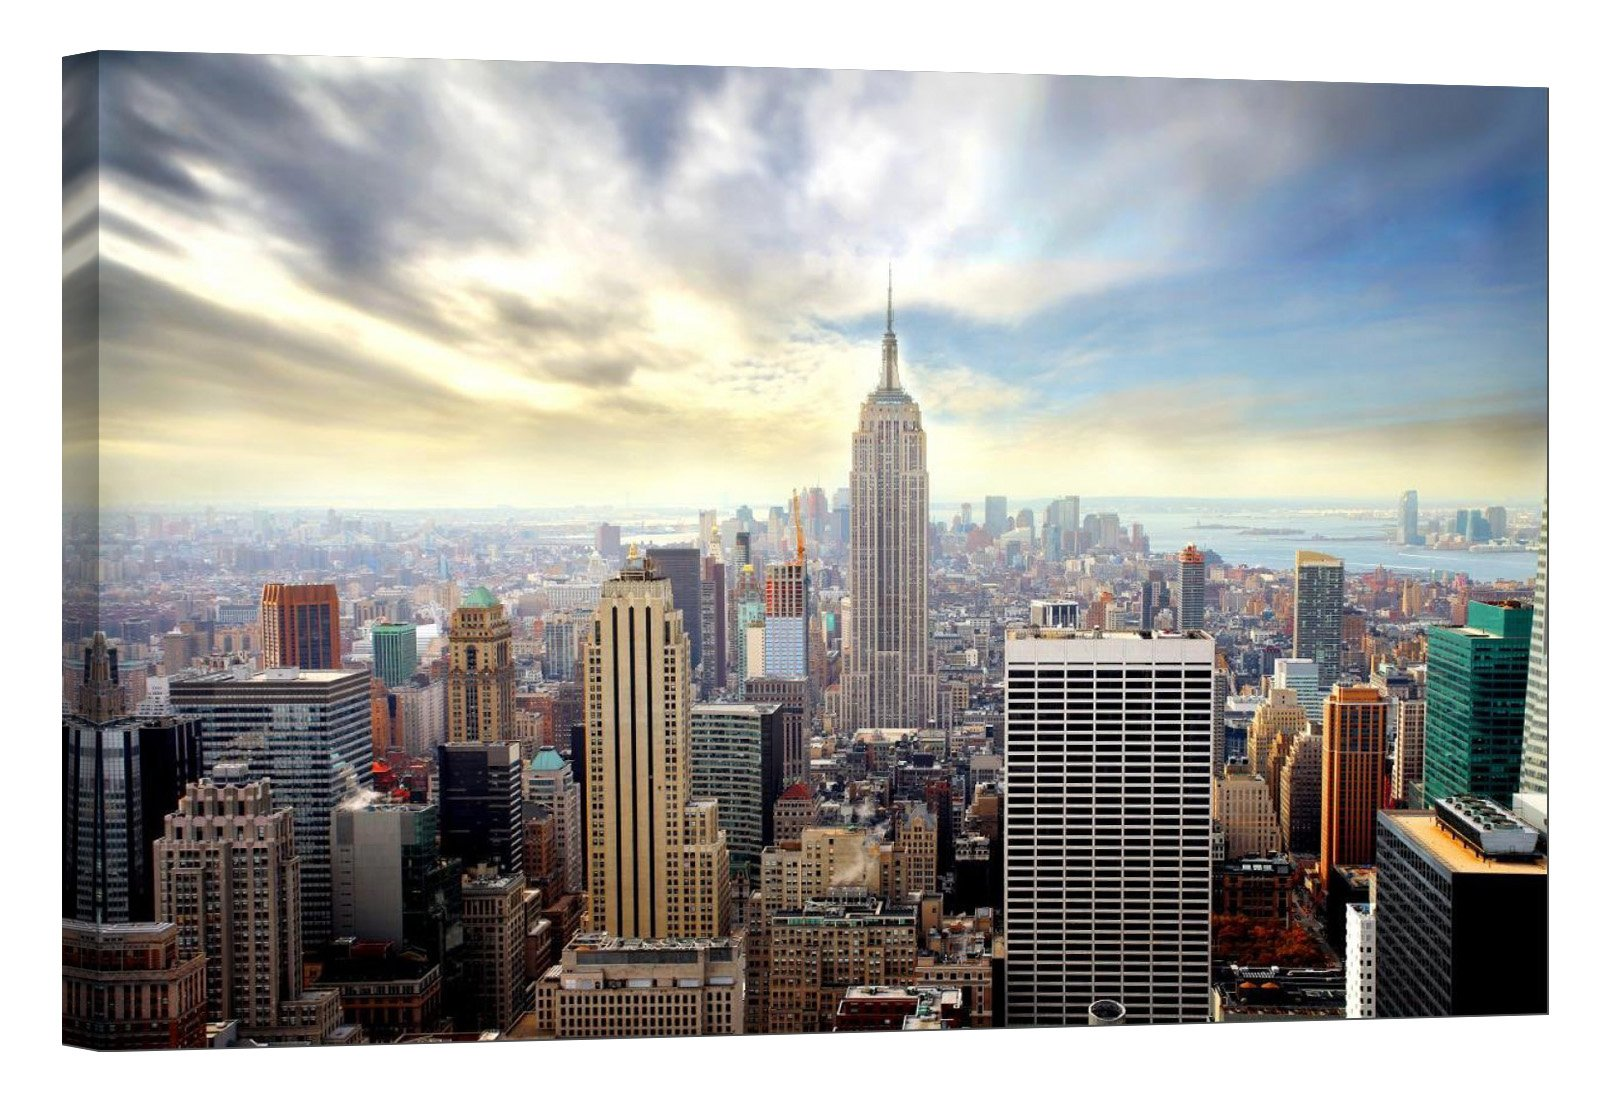 LightFairy Glow in The Dark Canvas Painting - Stretched and Framed Giclee Wall Art Print - City Urban Decor Empire State Building - Master Bedroom Living Room Decor - 6 Hours Glow - 36 x 24 inch